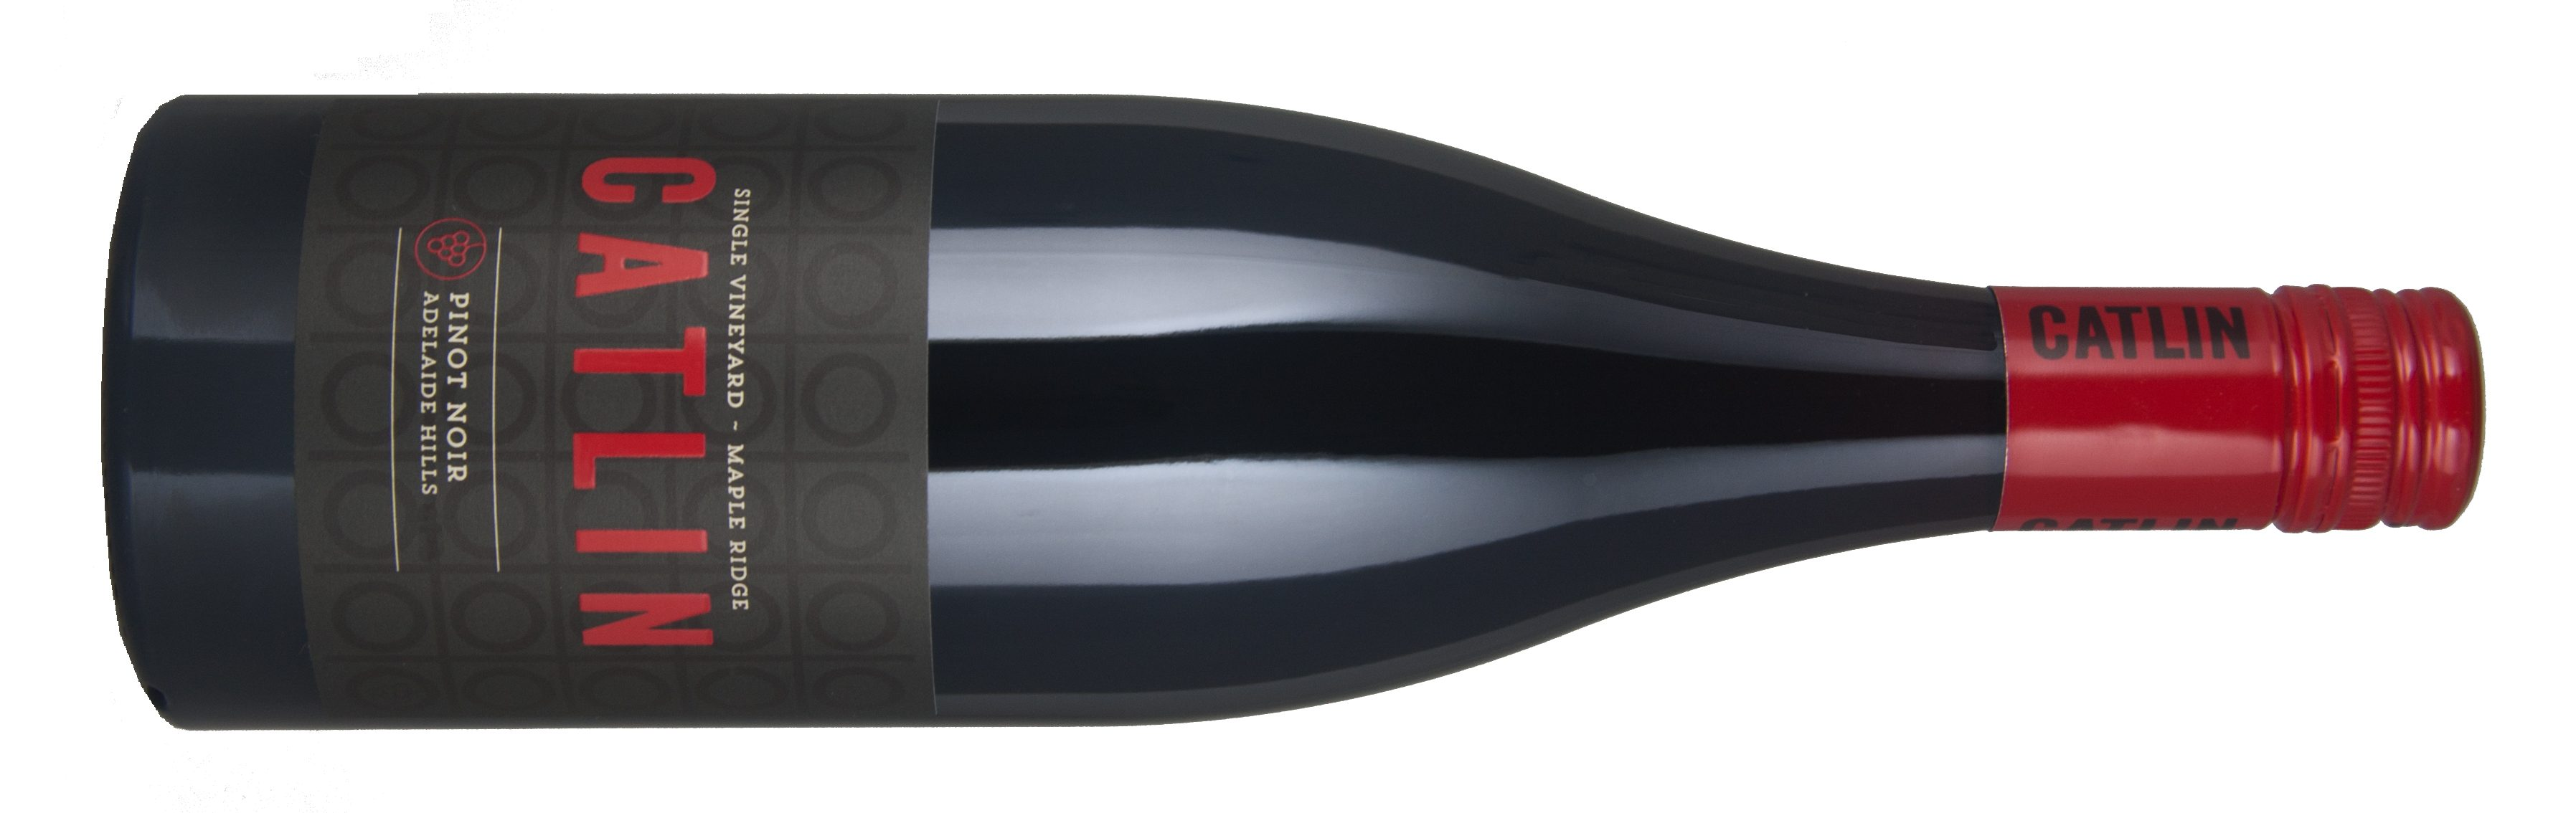 2016 Catlin Black Label Pinot Noir